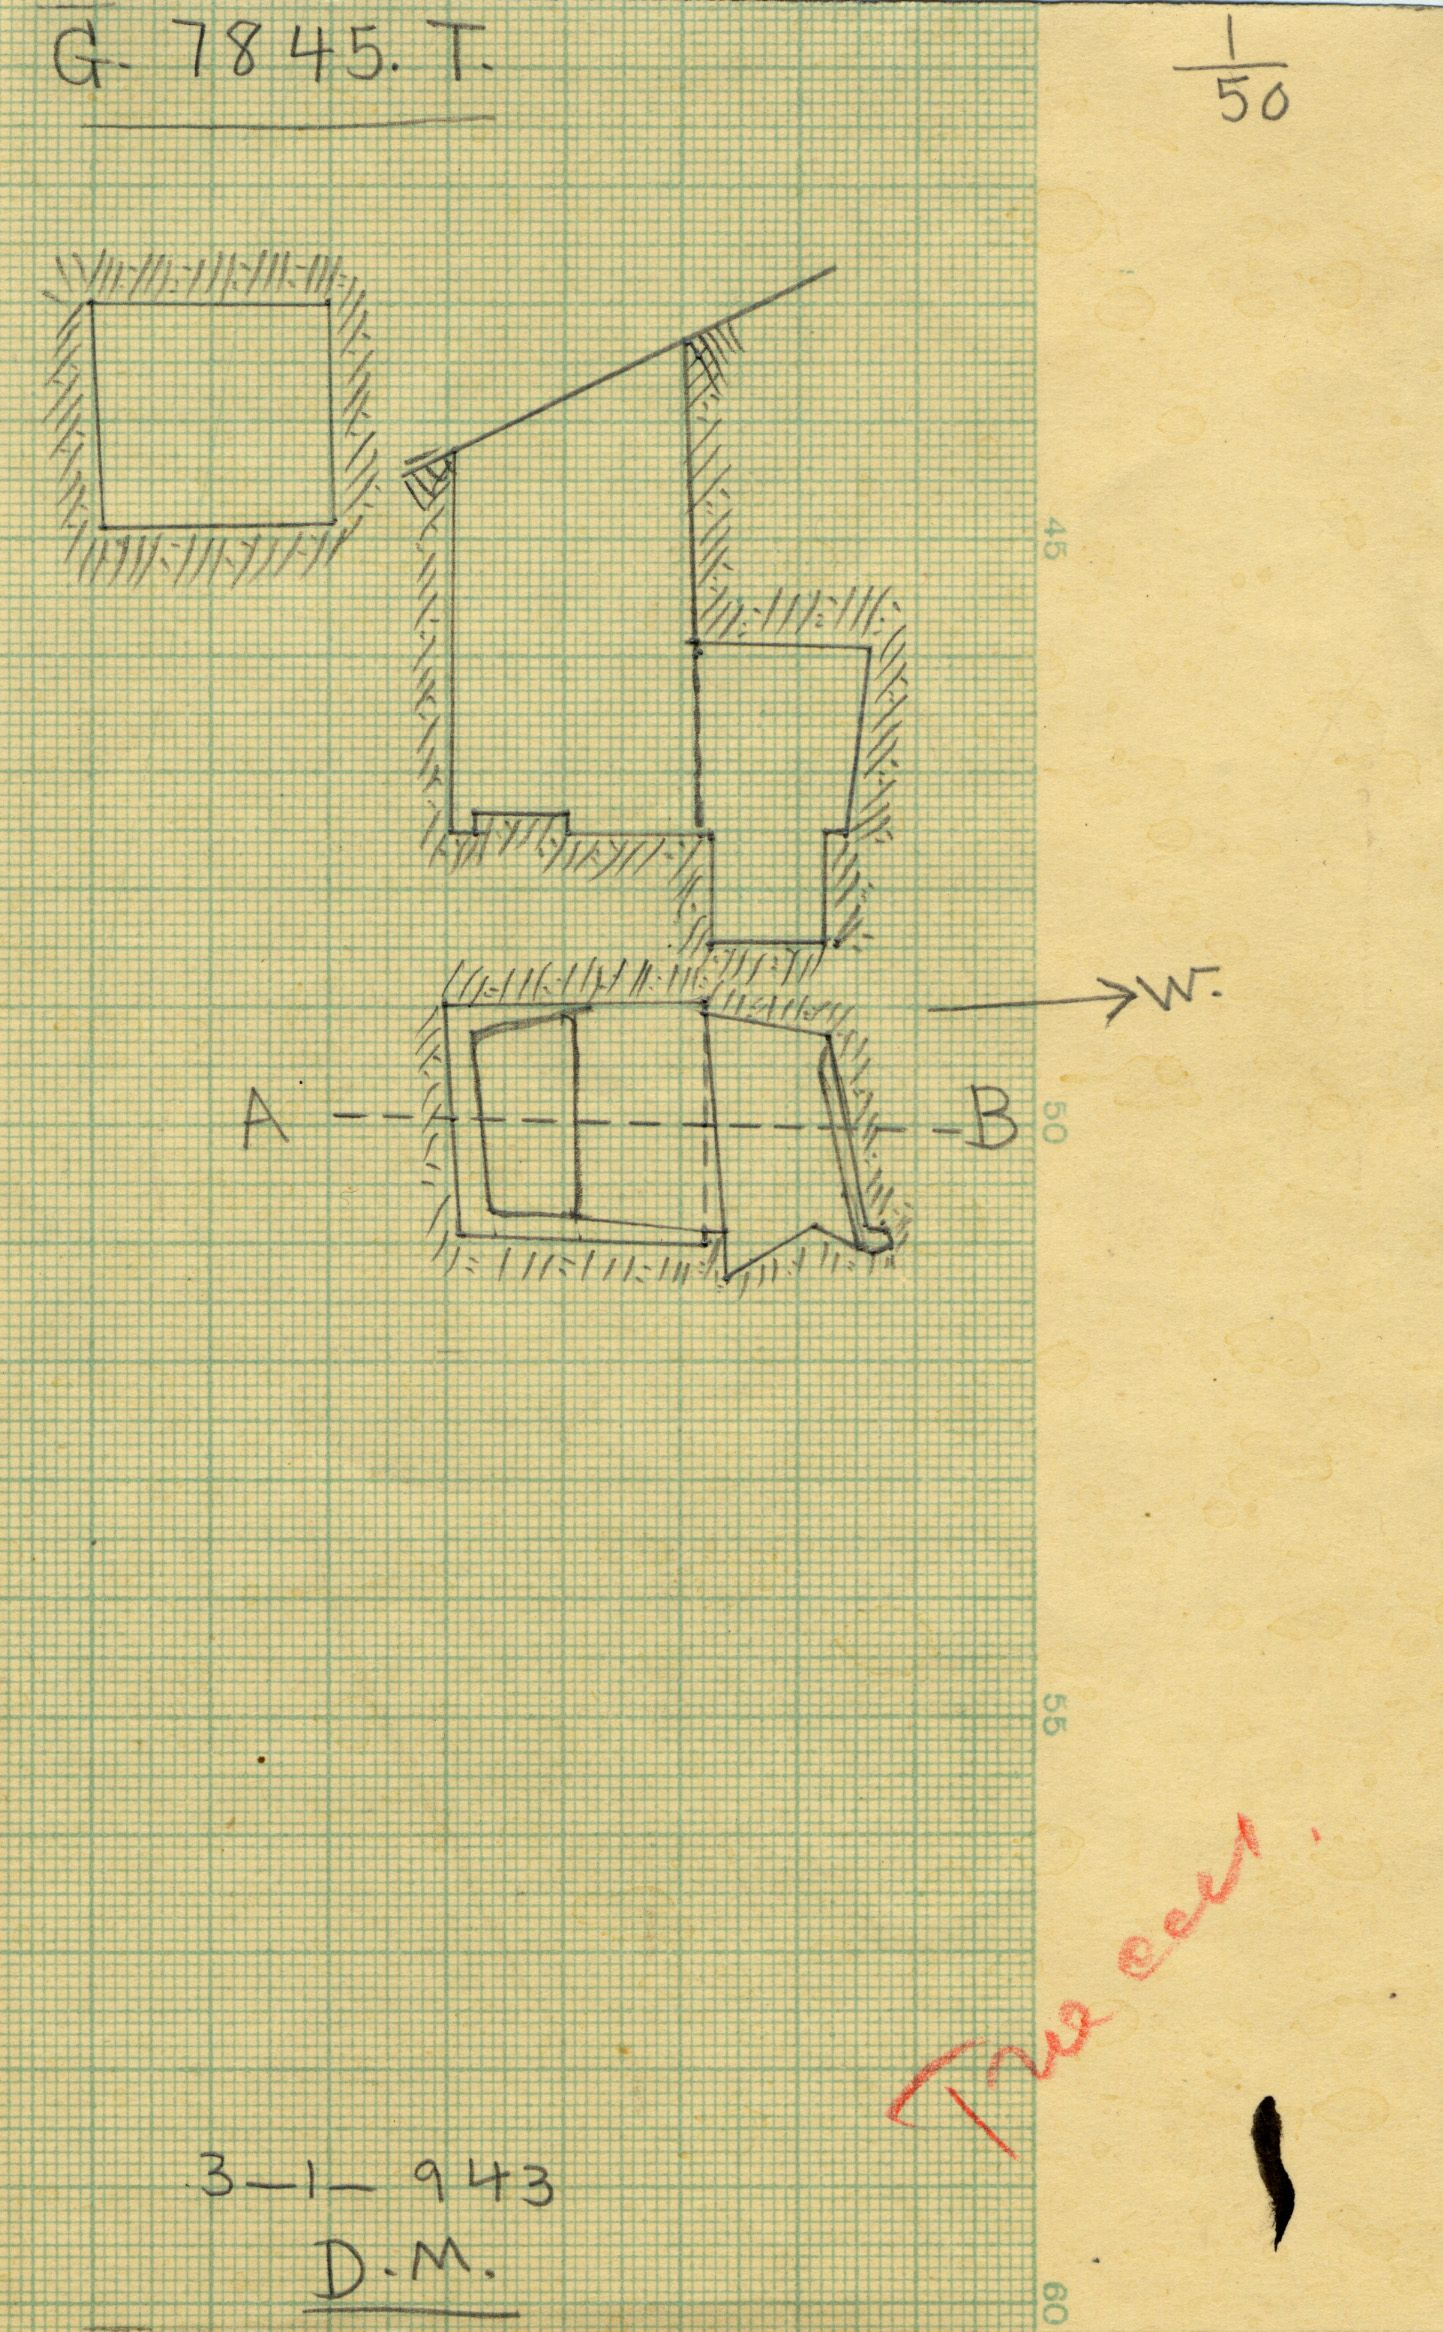 Maps and plans: G 7845, Shaft T